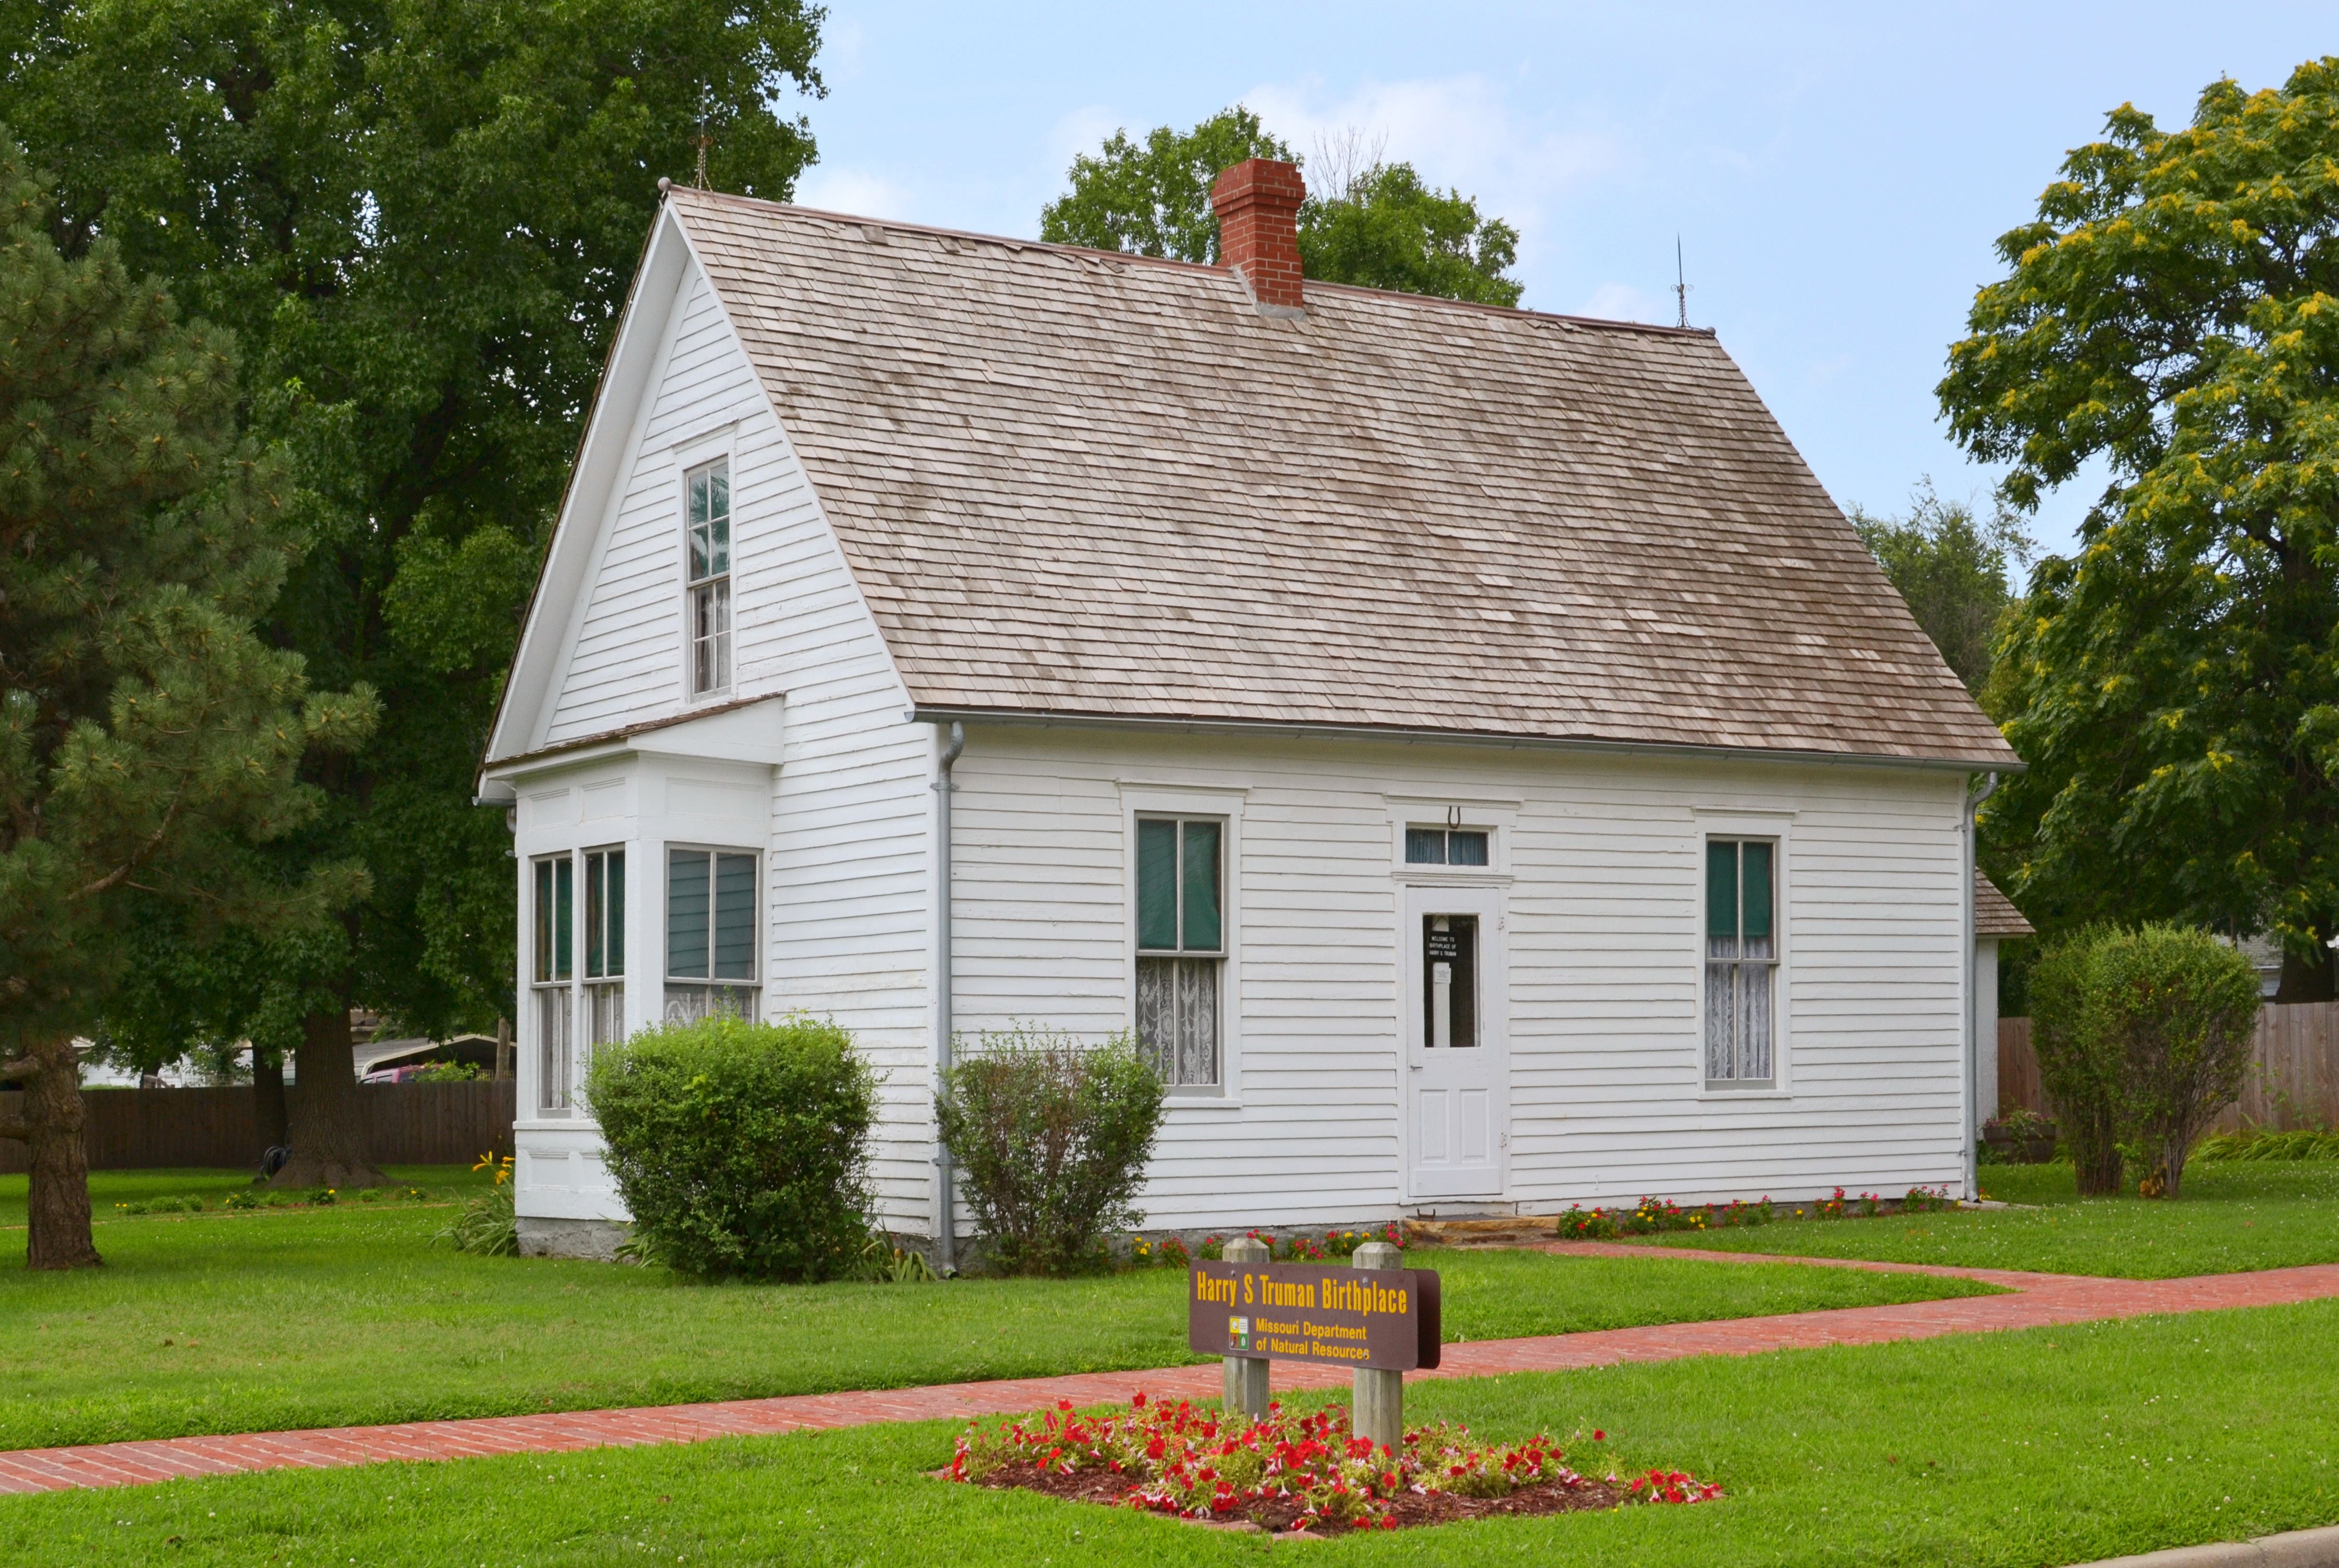 Harry S Truman Birthplace State Historic Site in Lamar, Missouri. Photo taken on July 15, 2015.